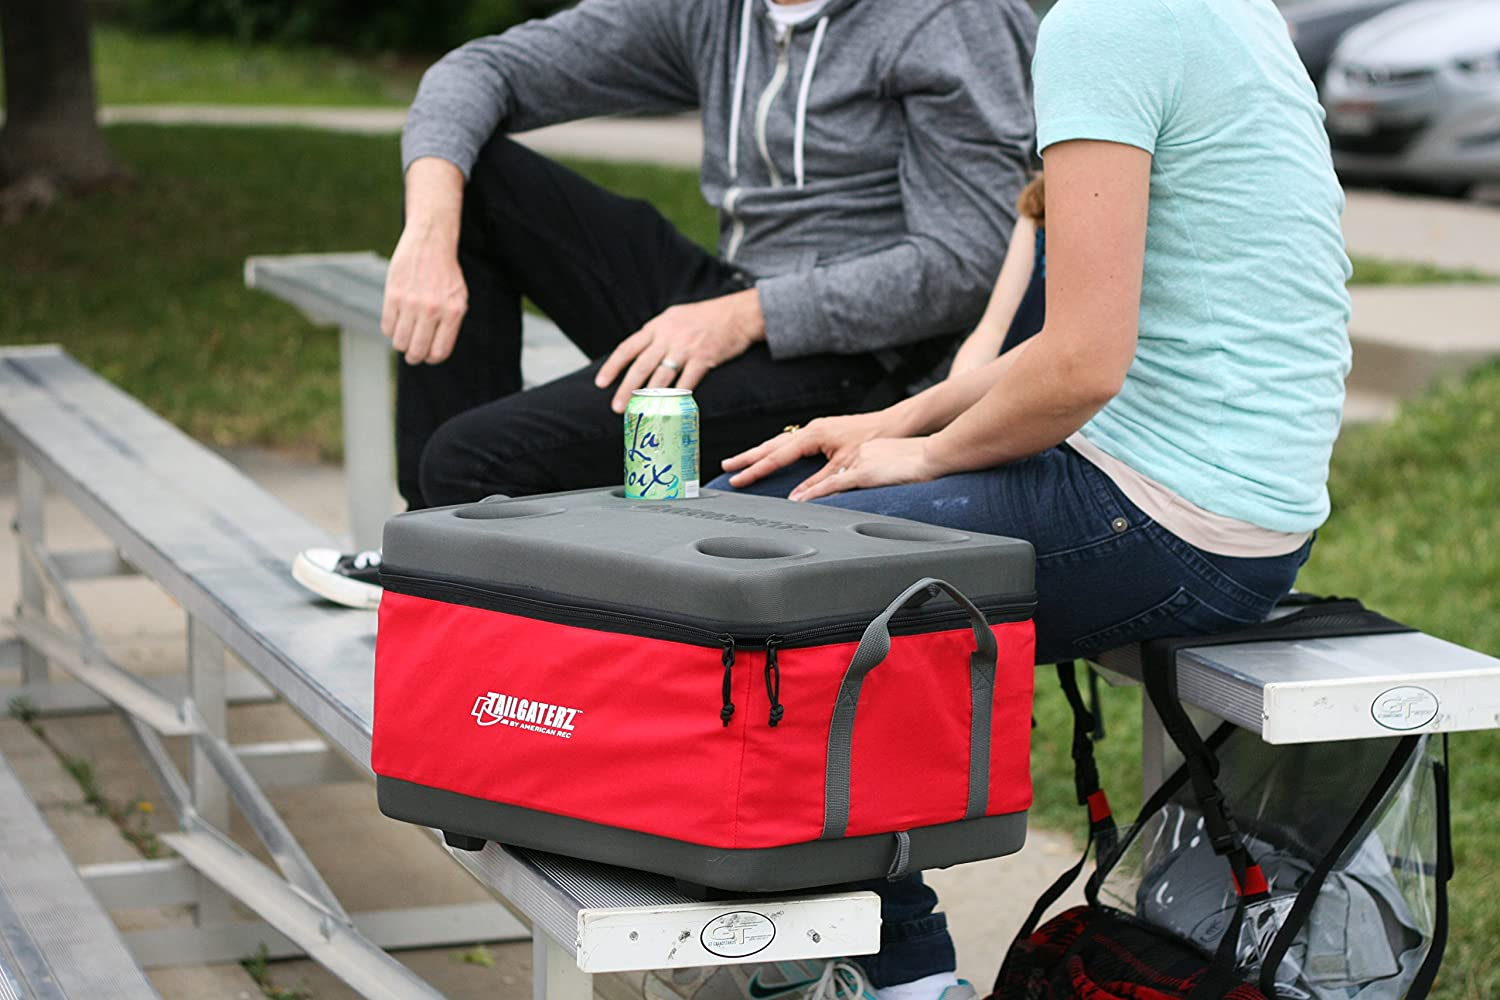 Tailgaterz Collapsible Cooler